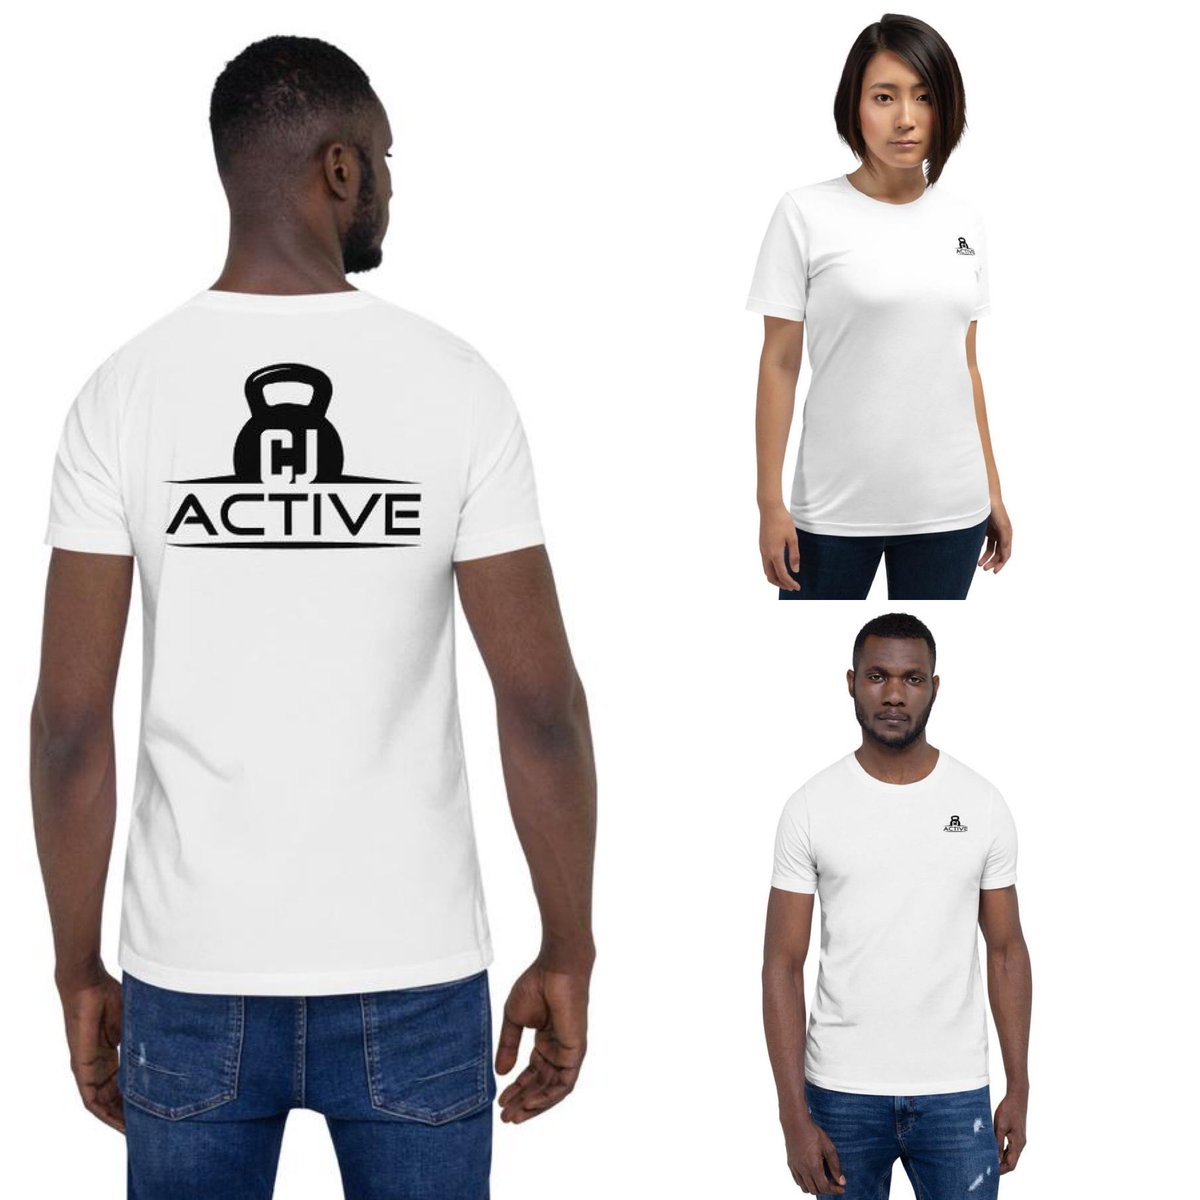 Logo tees available now, perfect for the gym! Get YOURS now! https://cjactive.com/collections/frontpage/products/unisex-premium-t-shirt-bella-canvas-3001… #CJactivepic.twitter.com/uDAX1iv5dd